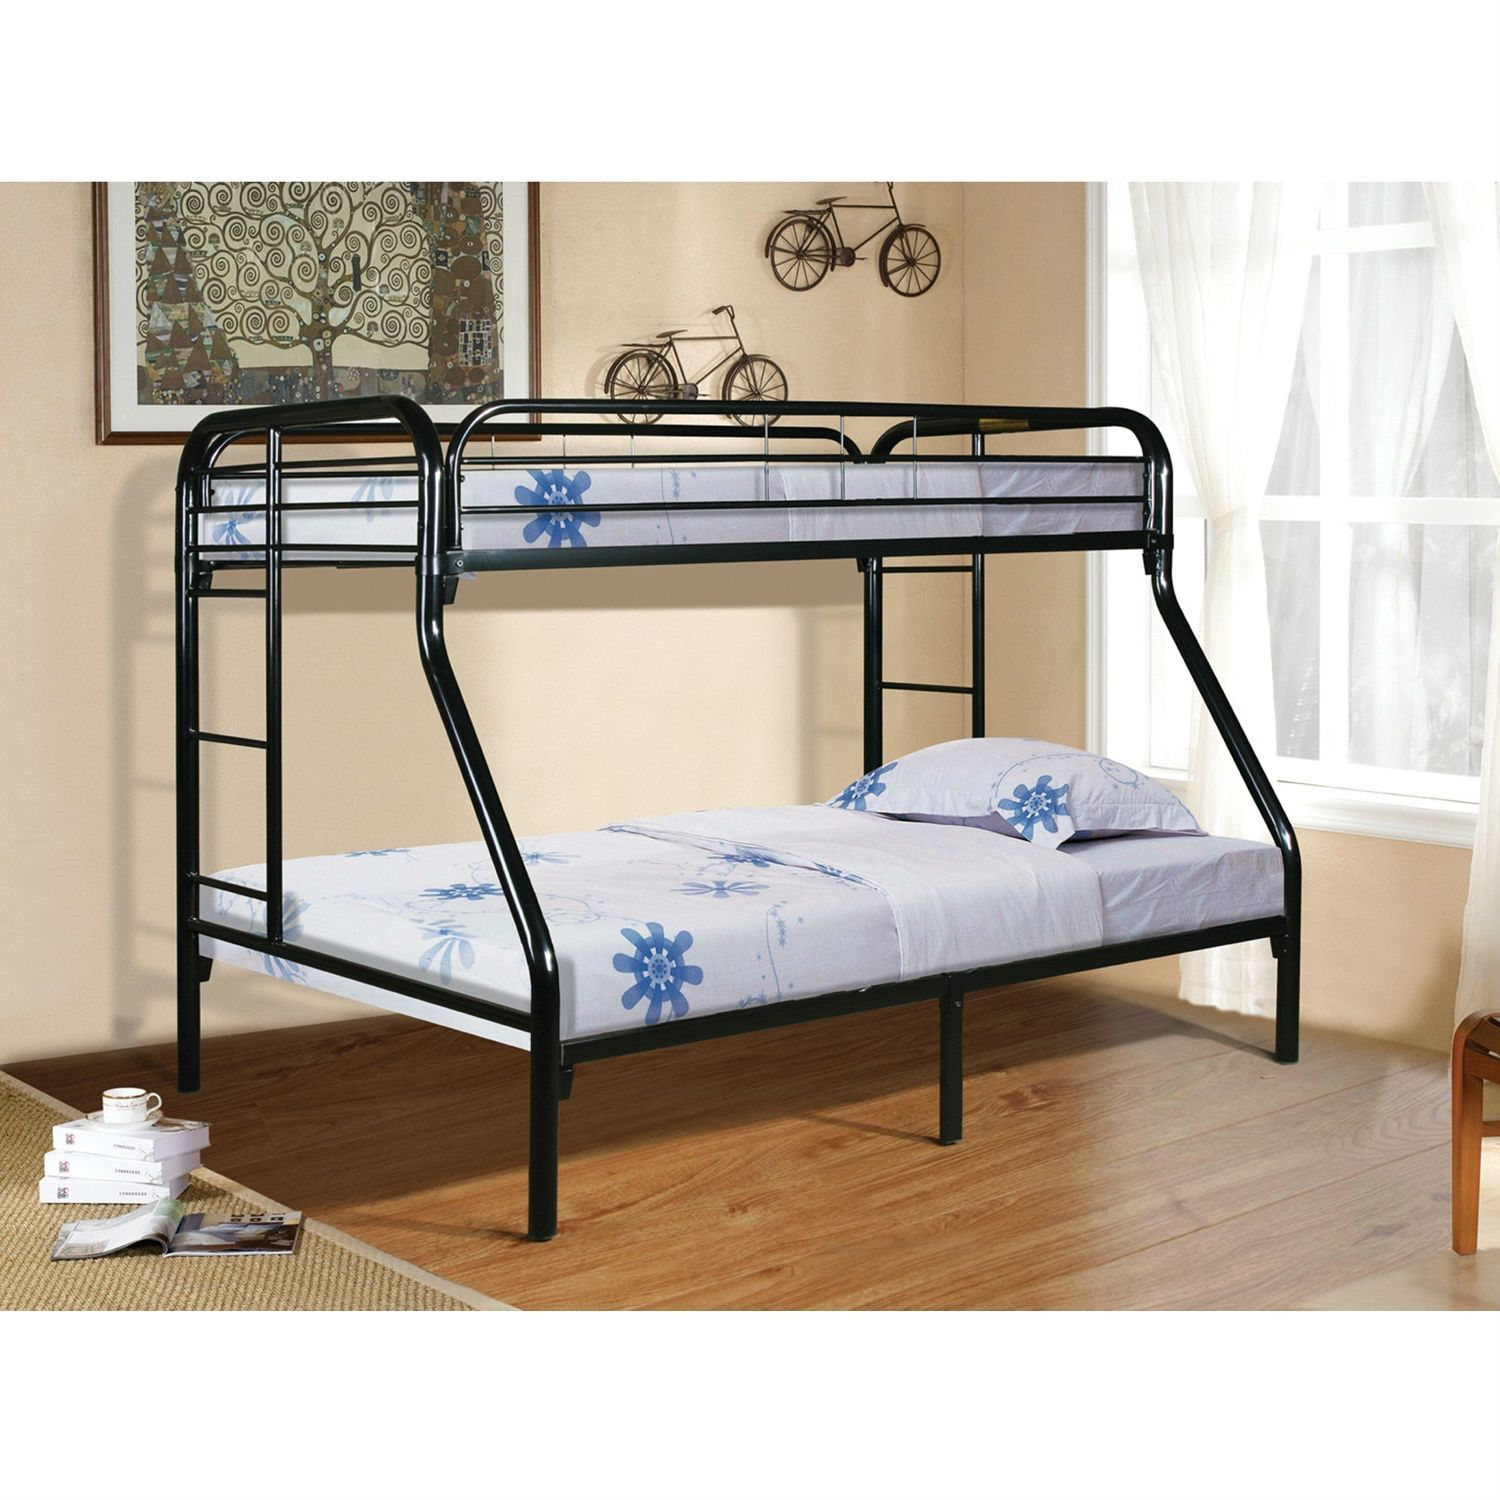 Twin over Full size Sturdy Black Metal Bunk Bed with